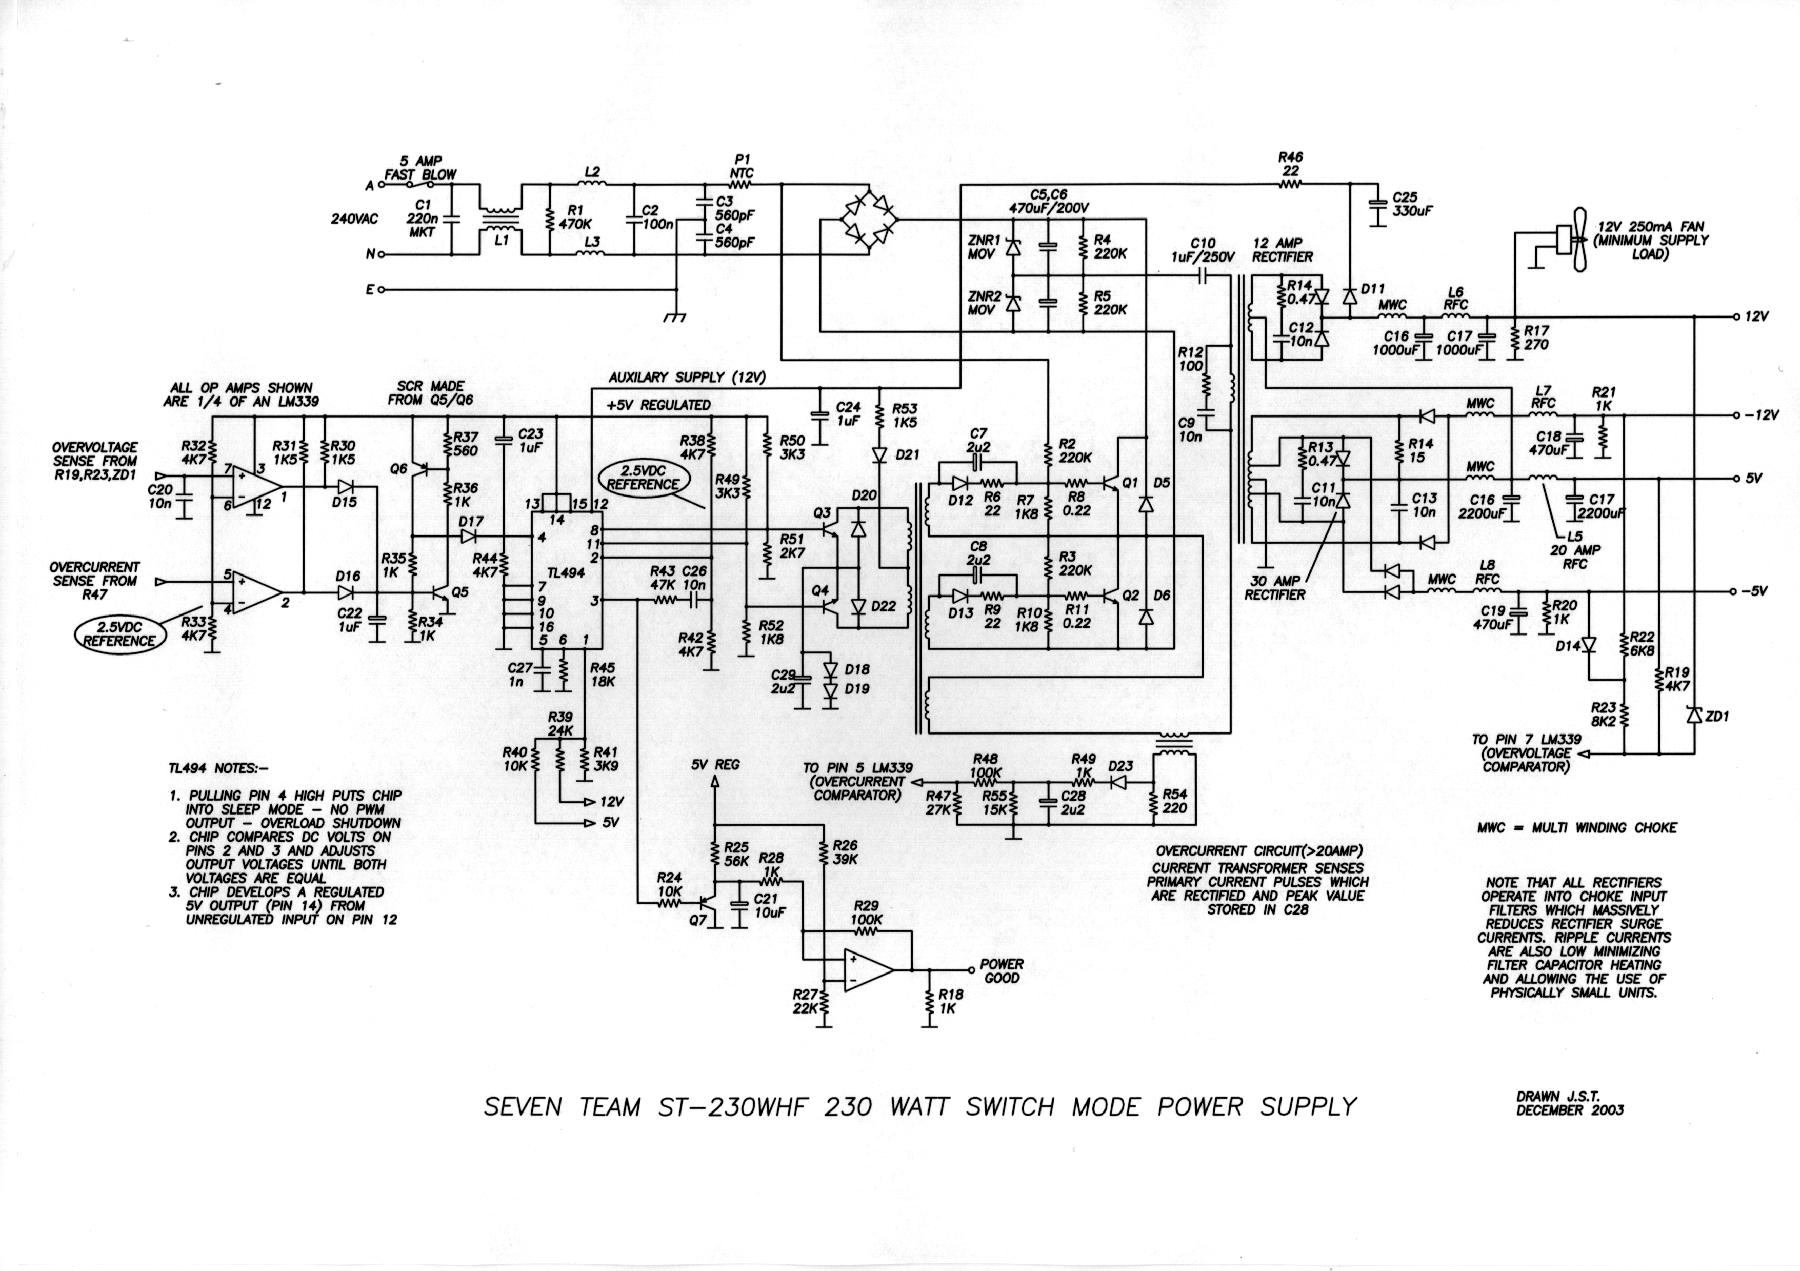 230w switching power supply power supply circuits switching power supply circuit diagram quotes [ 1800 x 1271 Pixel ]